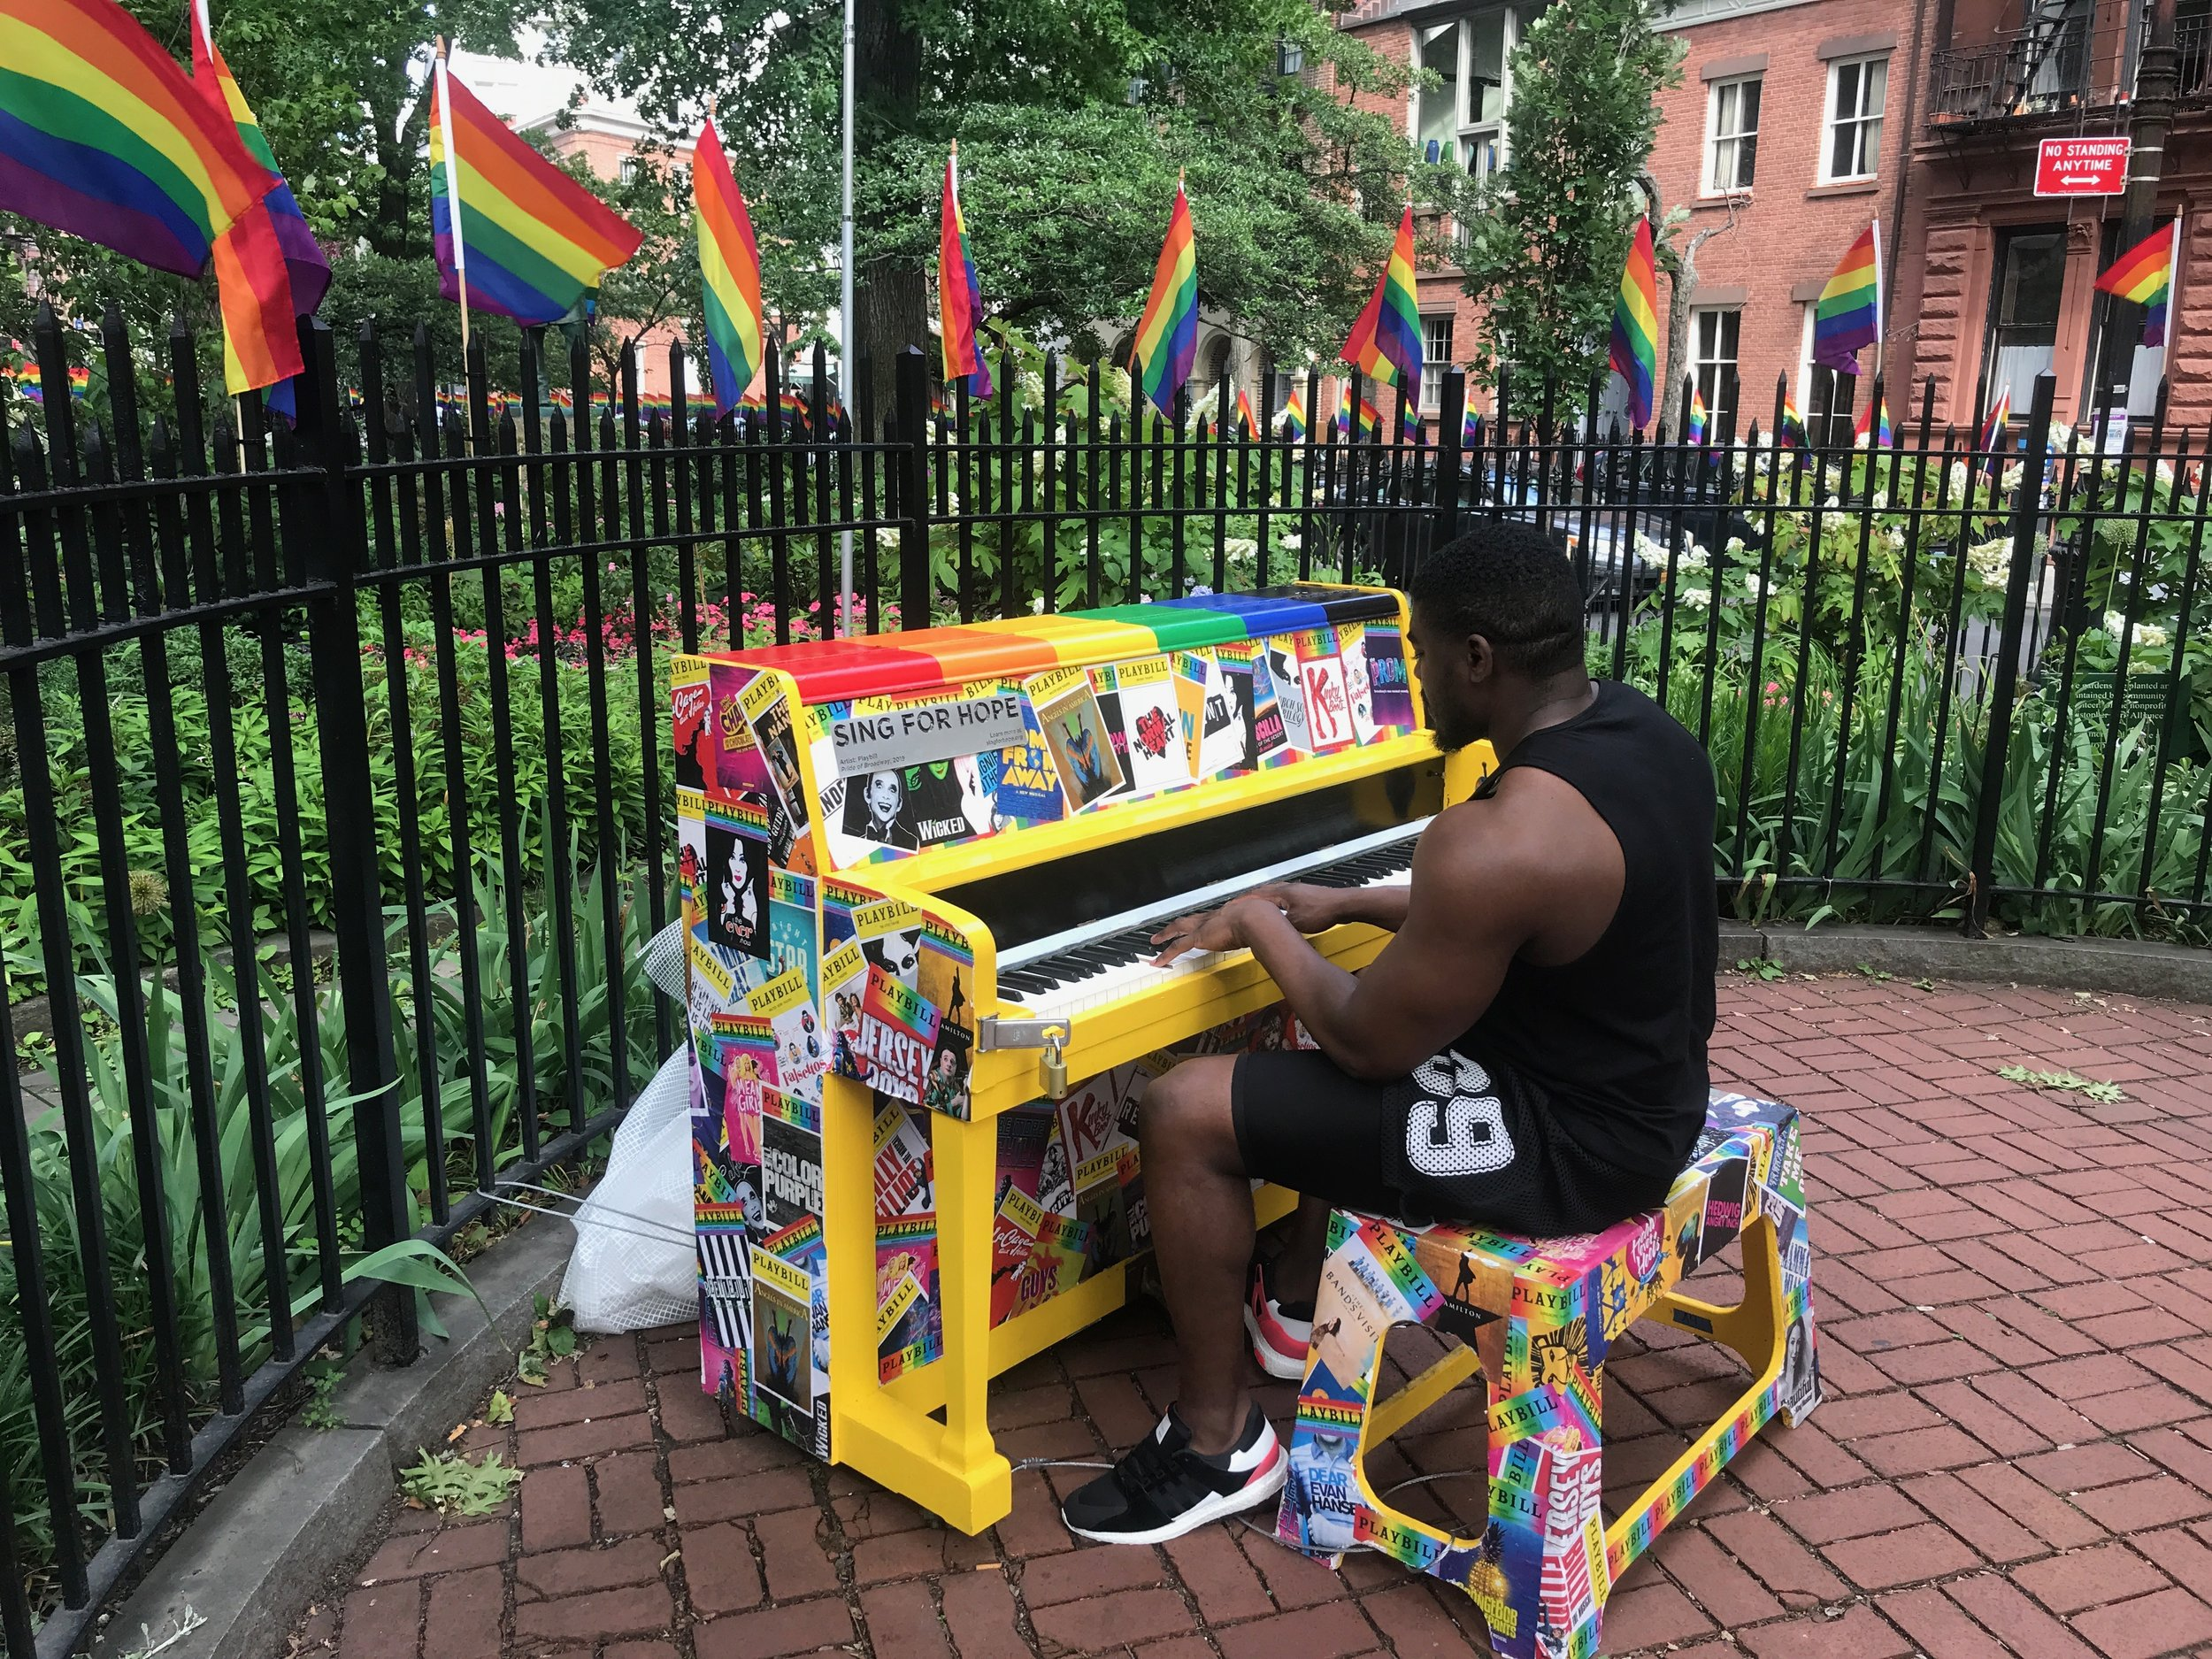 A piano player entertains visitors at Stonewall National Monument, across from the Stonewall Inn in New York's Greenwich Village.